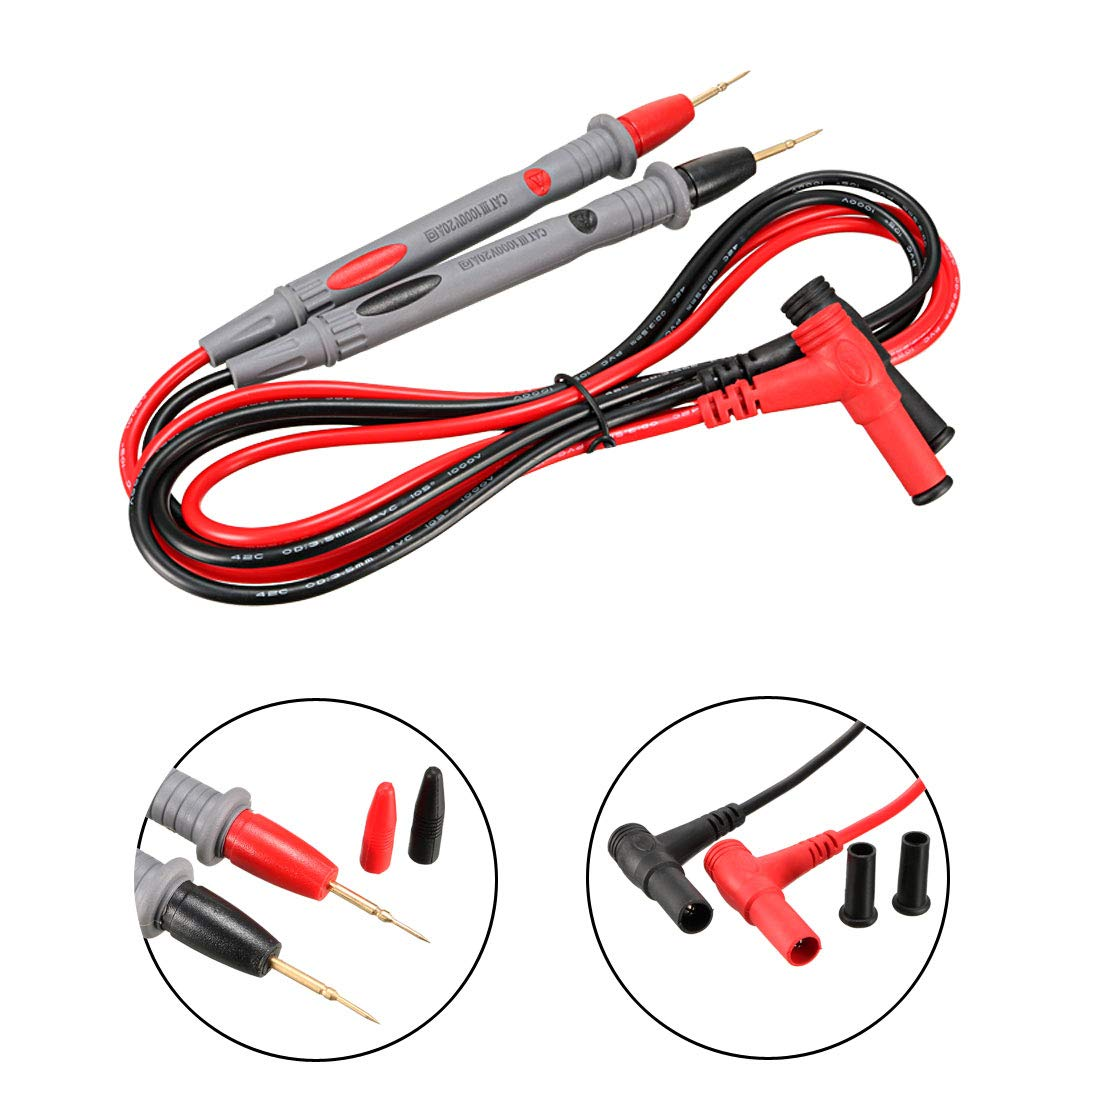 24-in-1 Set Digital Multimeter Probe Tester Lead Wire Pen Cable with Alligator Clips,1000V 10A//20A uxcell Multimeter Test Leads